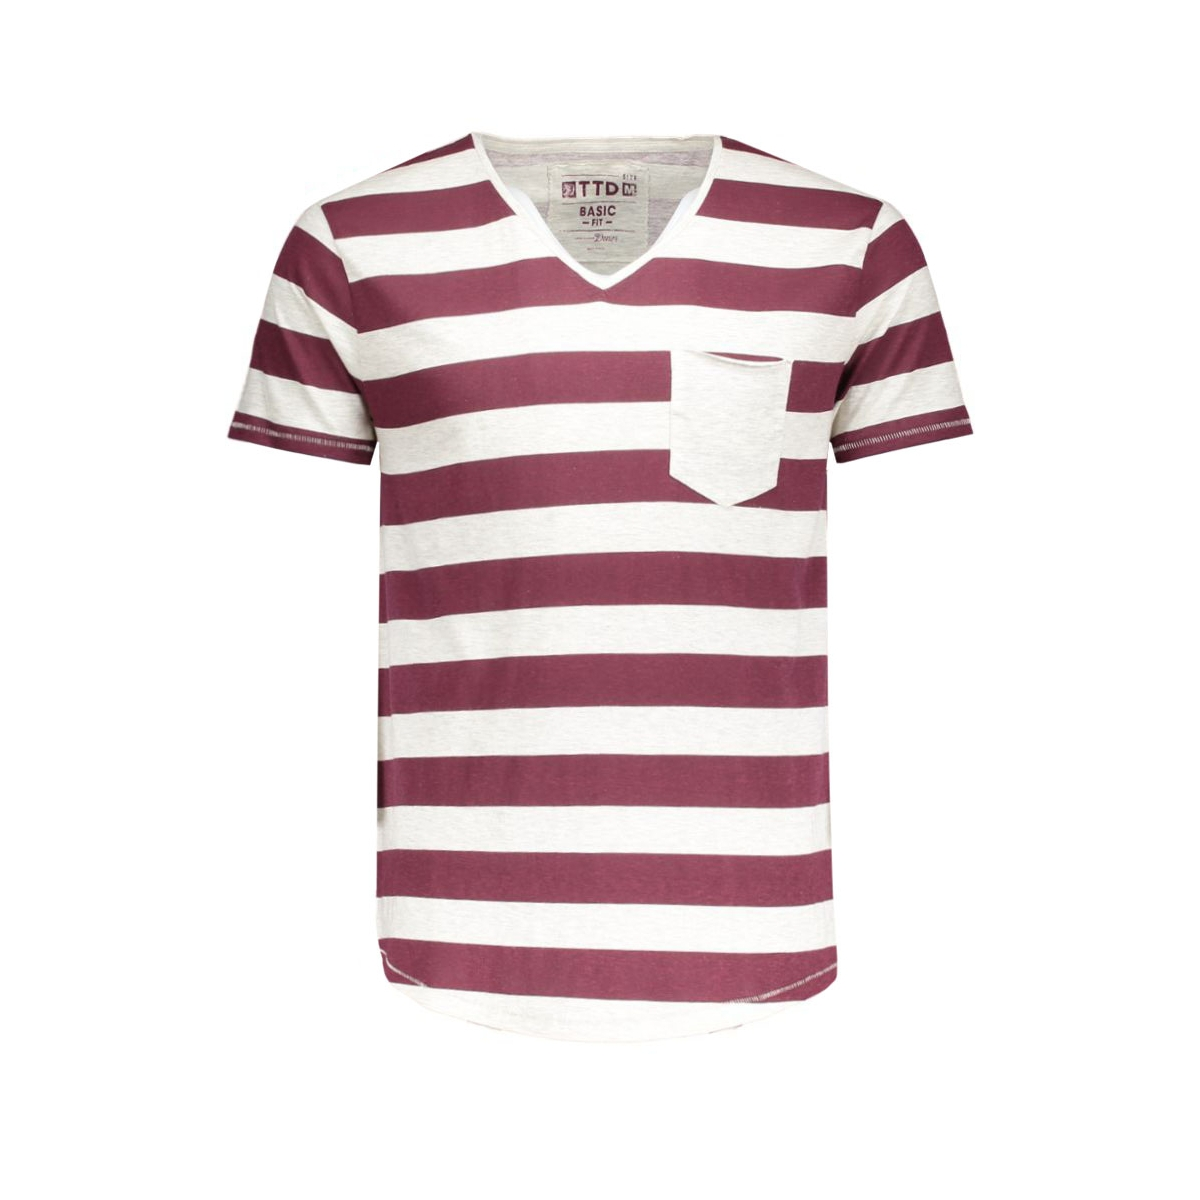 1035311.09.12 tom tailor t-shirt 2608